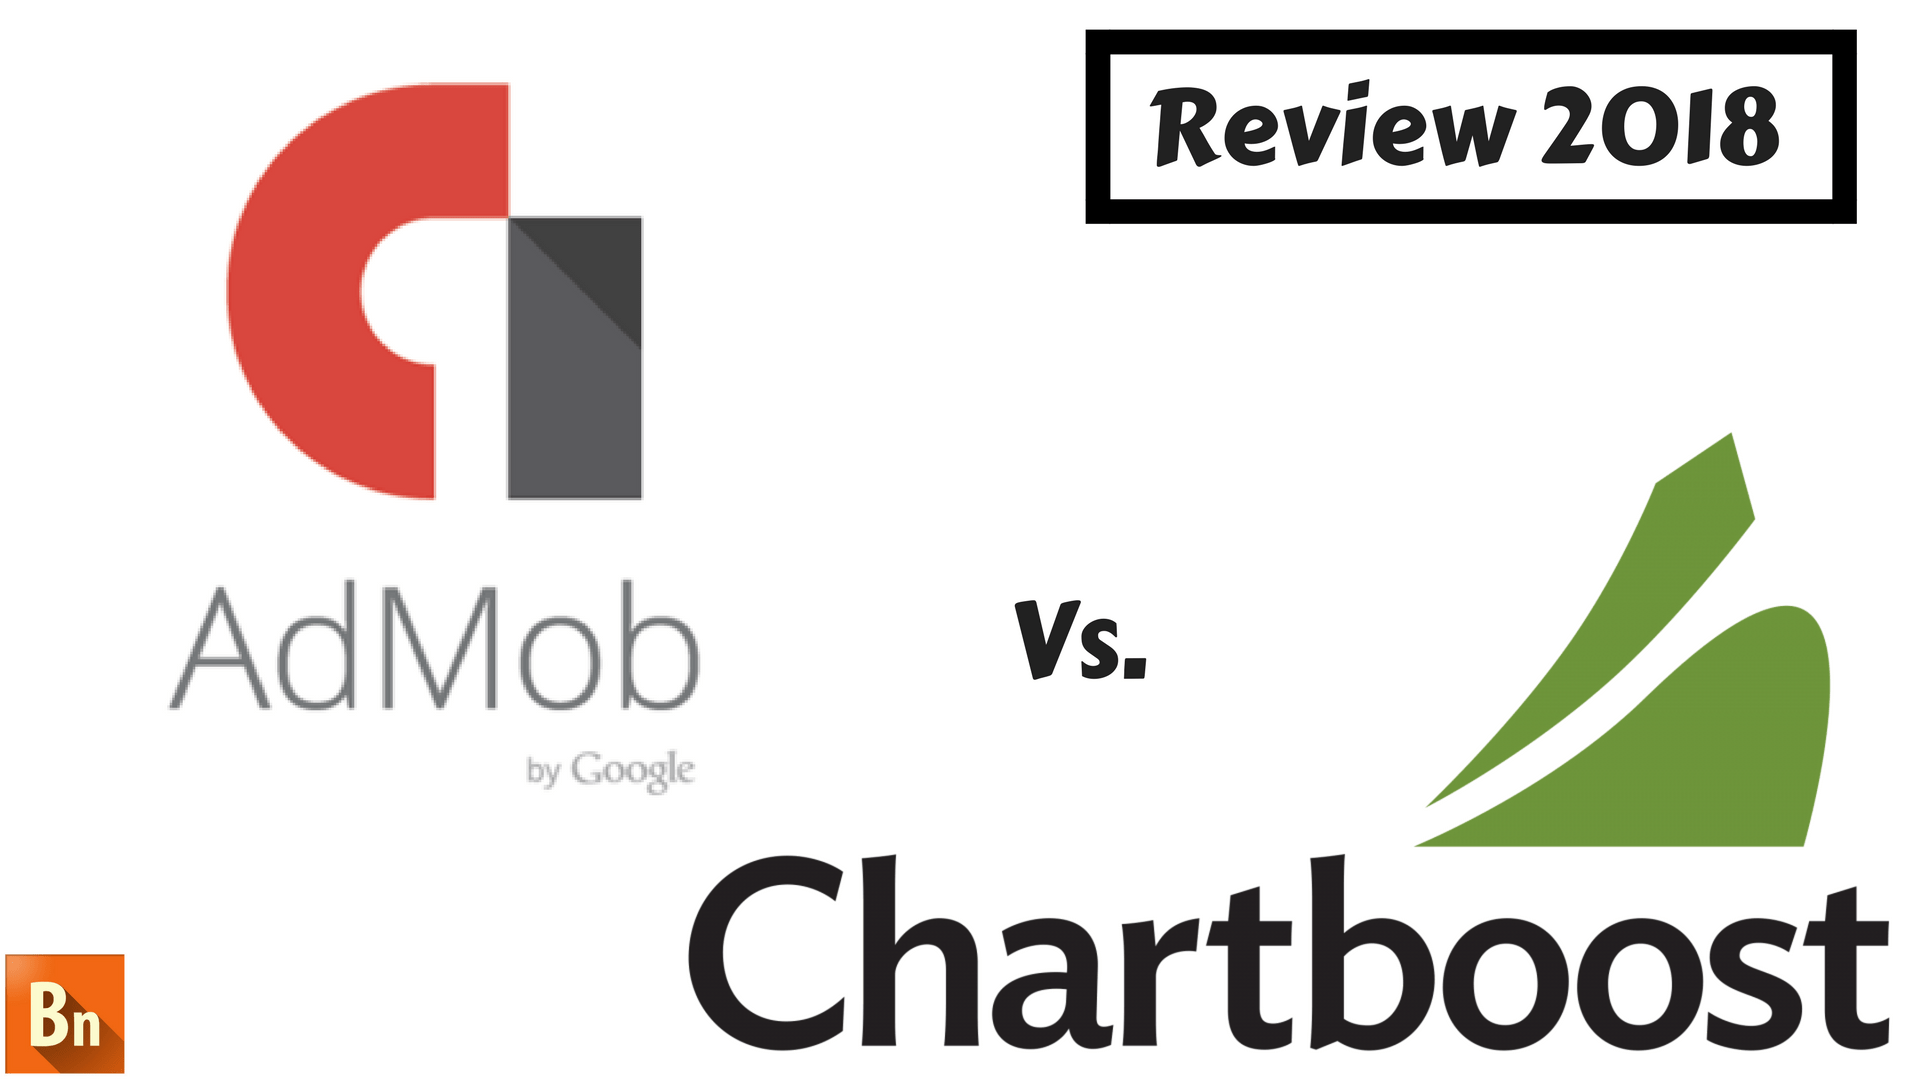 Chartboost vs Admob- Review 2019